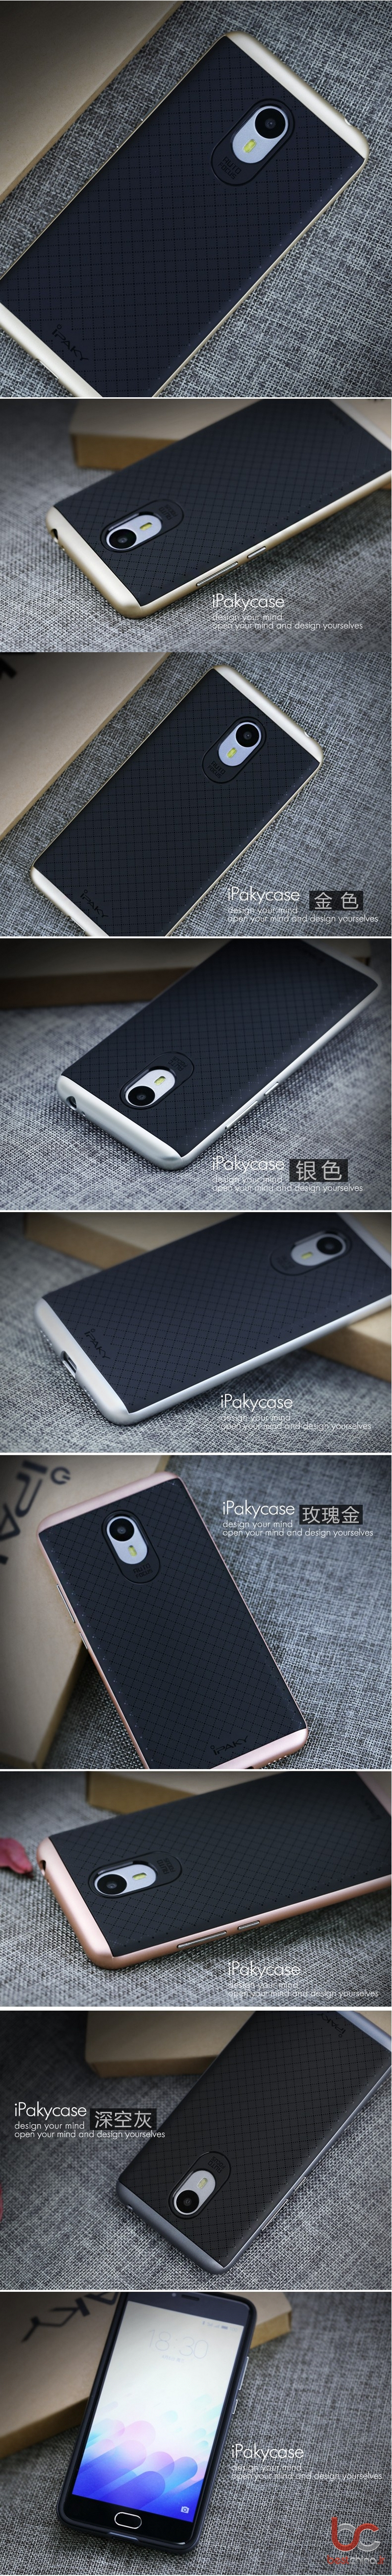 Meizu M3 Note iPaky Back Cover (5)